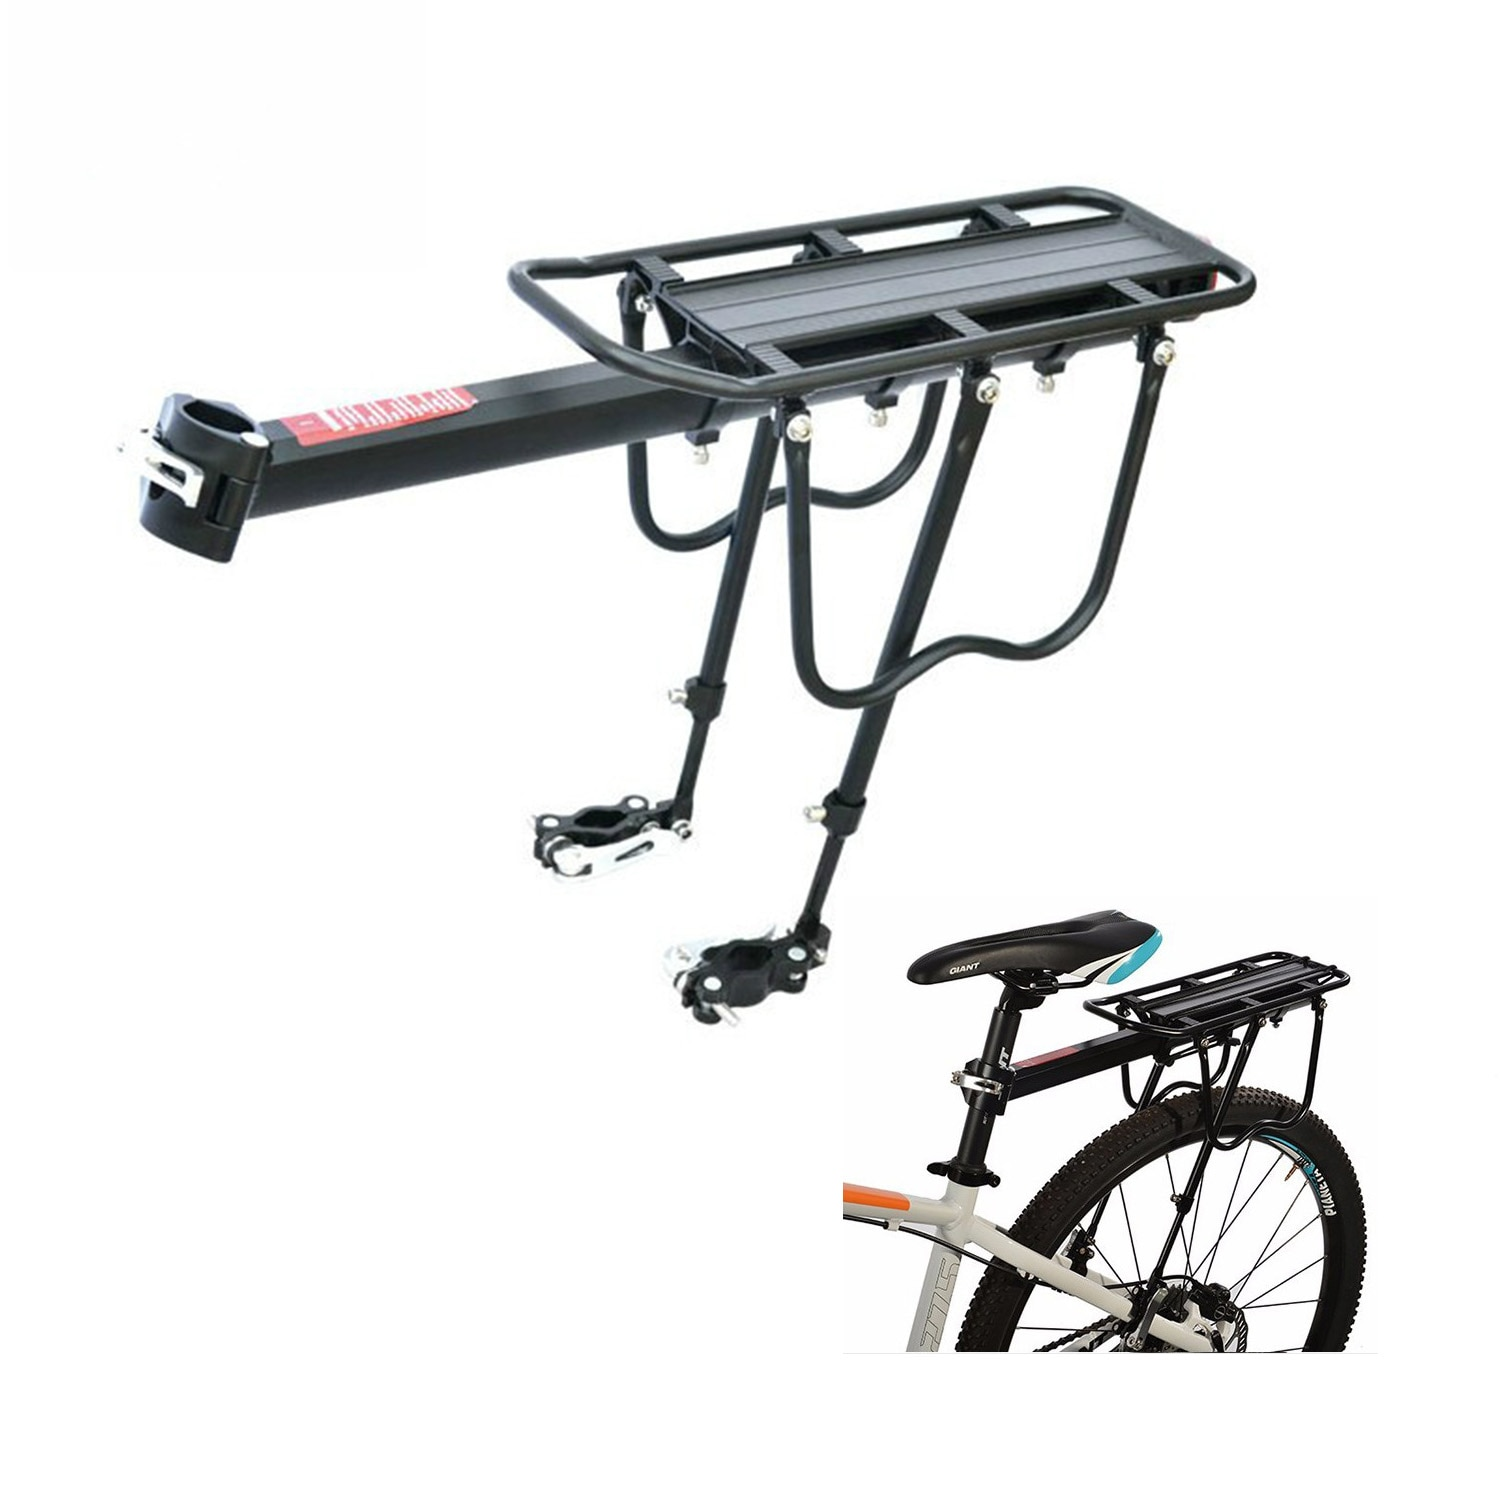 Bicycle Luggage Carrier Rear Cargo Rack Stand 35-13.5'' Bike Trunk 50KG Load Fit 4.0 '' Fat Bike Tire